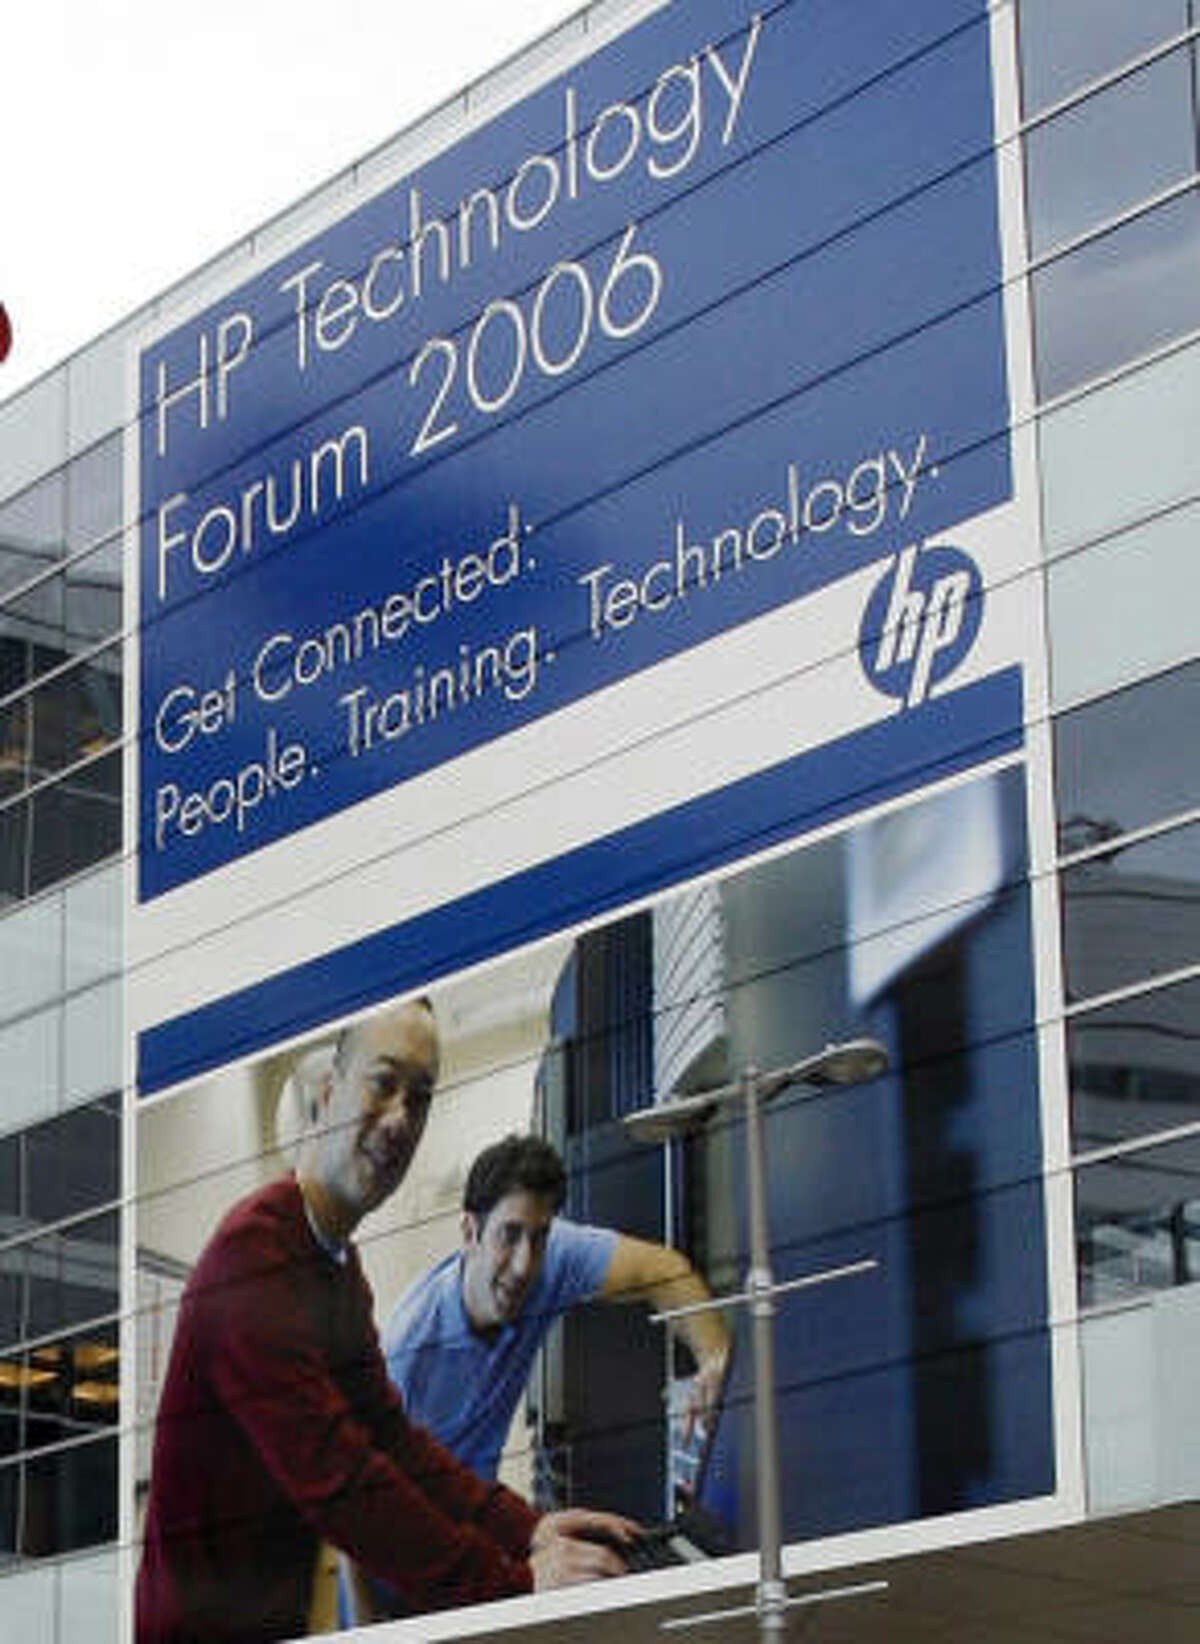 A banner welcomes visitors to the HP Technology Forum.